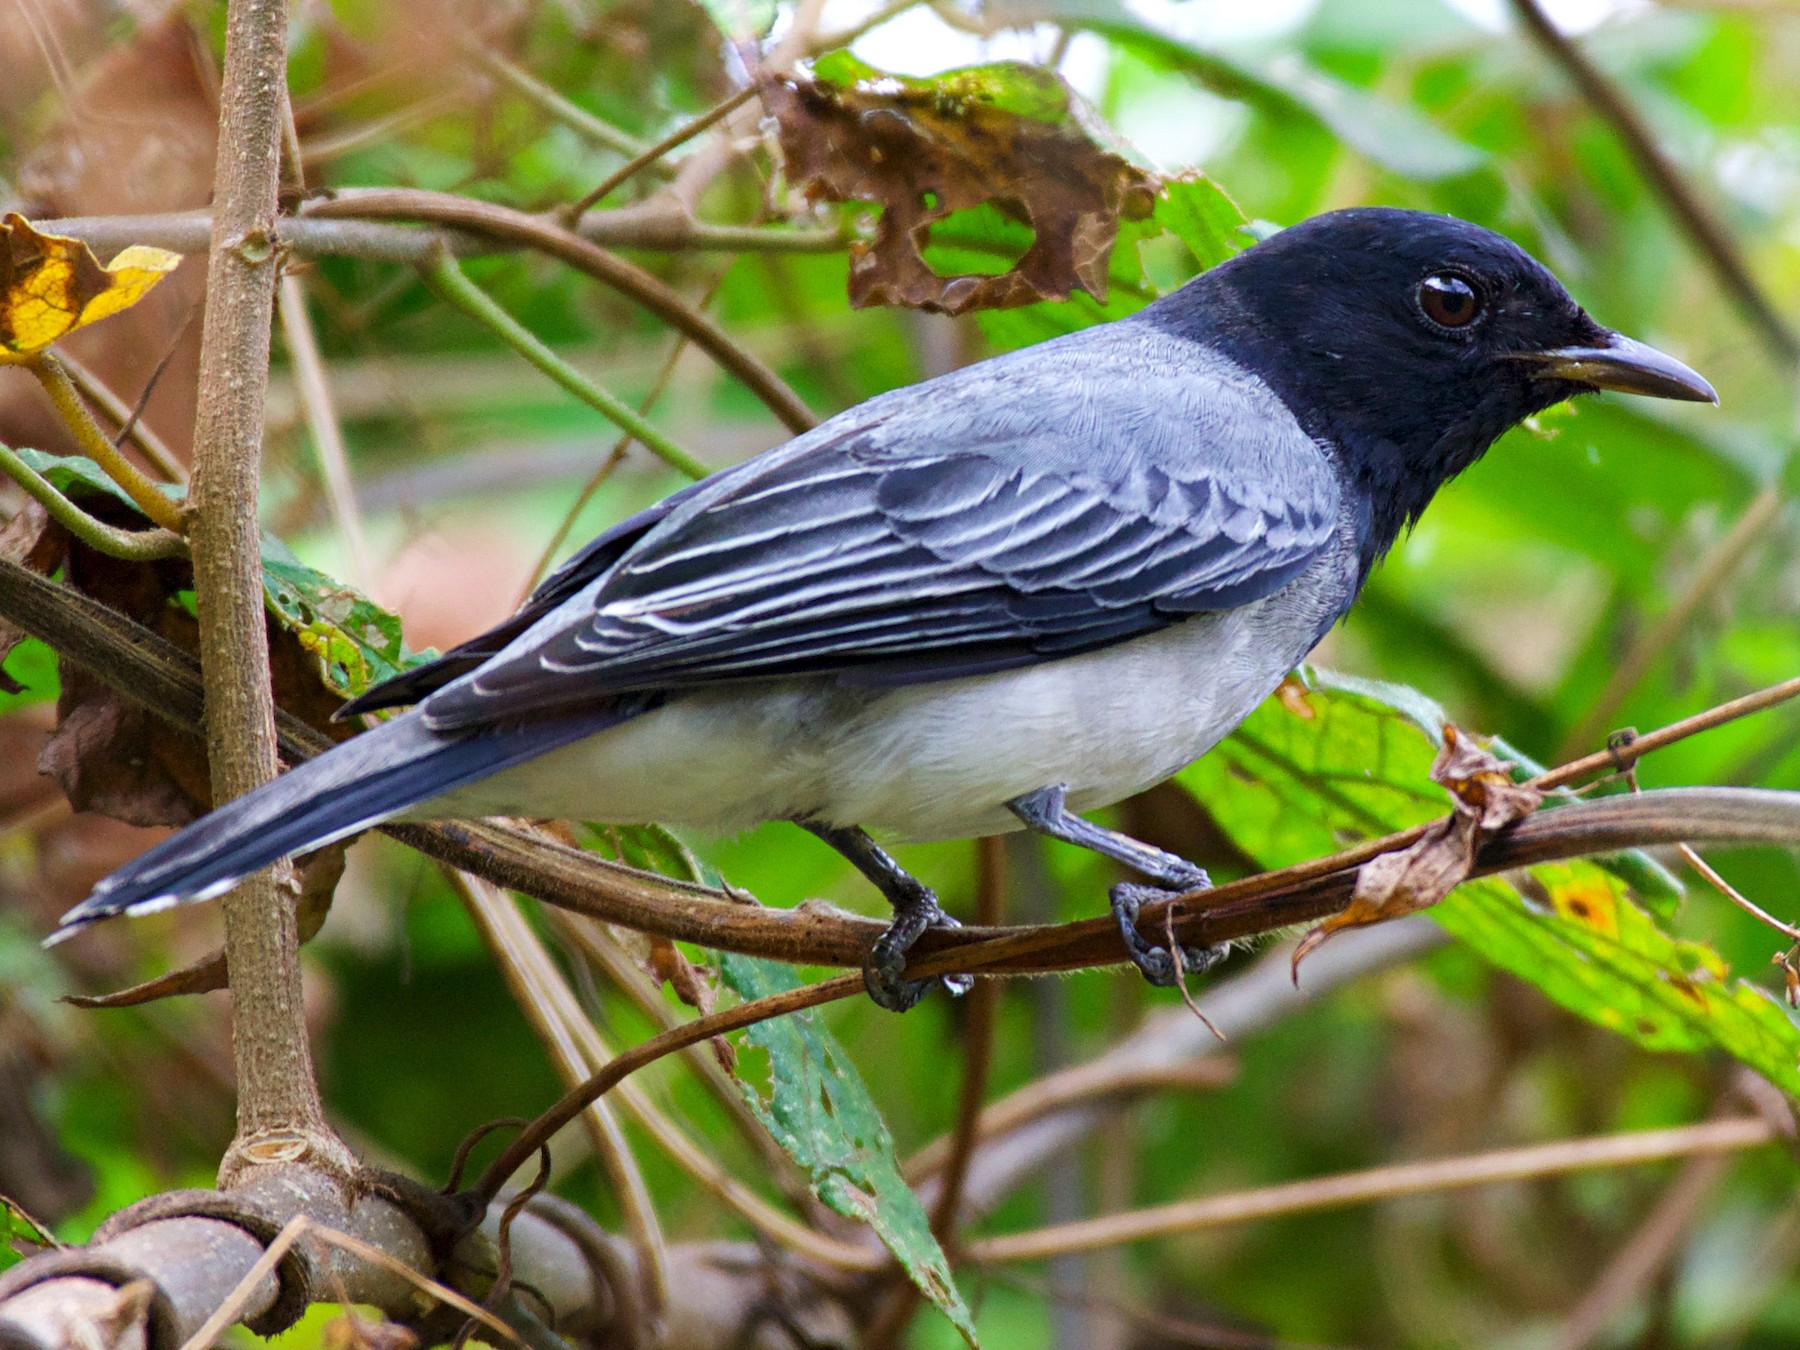 Black-headed Cuckooshrike - Shalu Amana